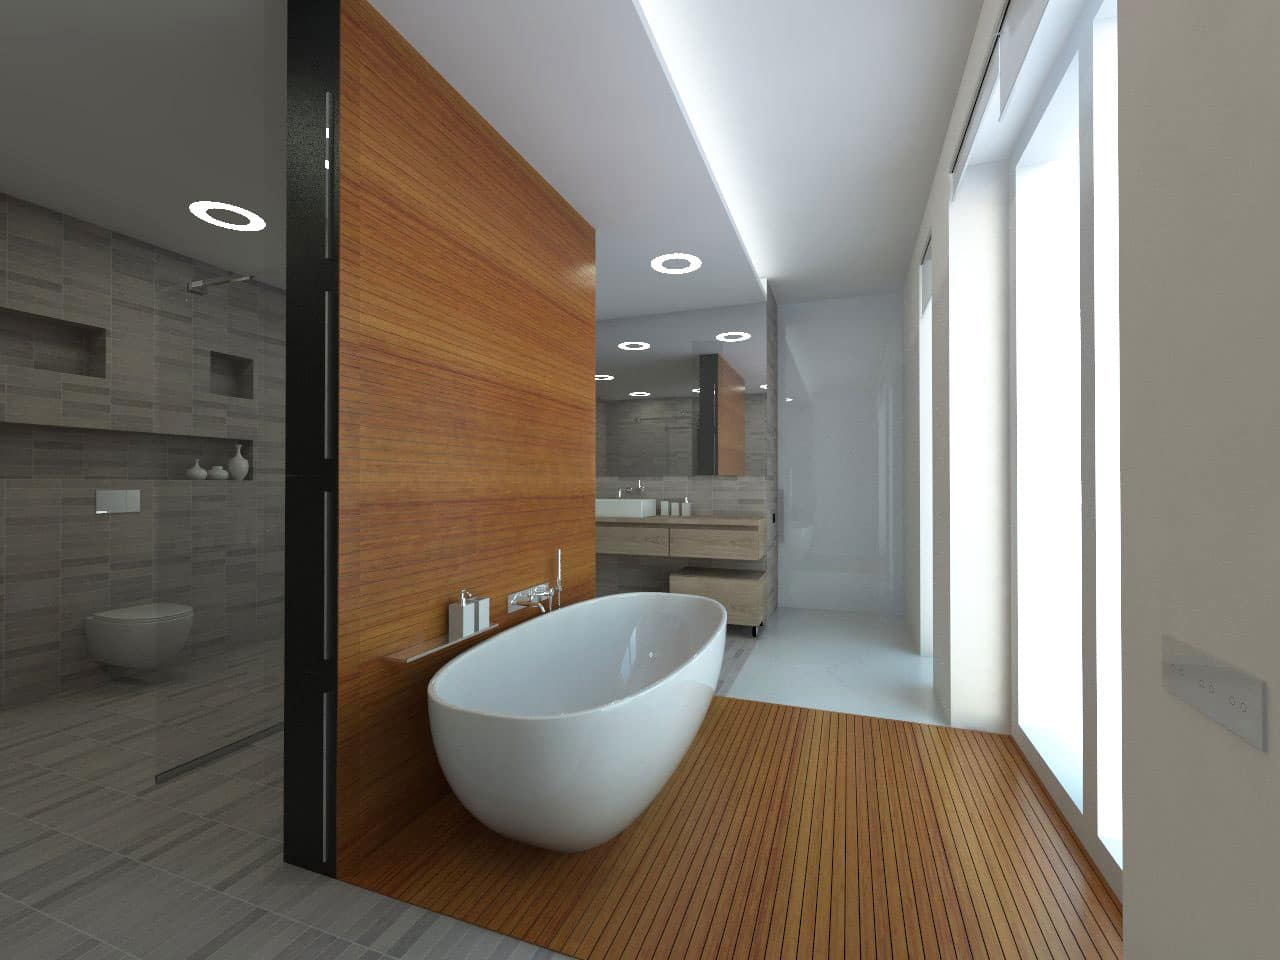 Classy wooden trimmed walk through bathroom with the eggshell bathtub